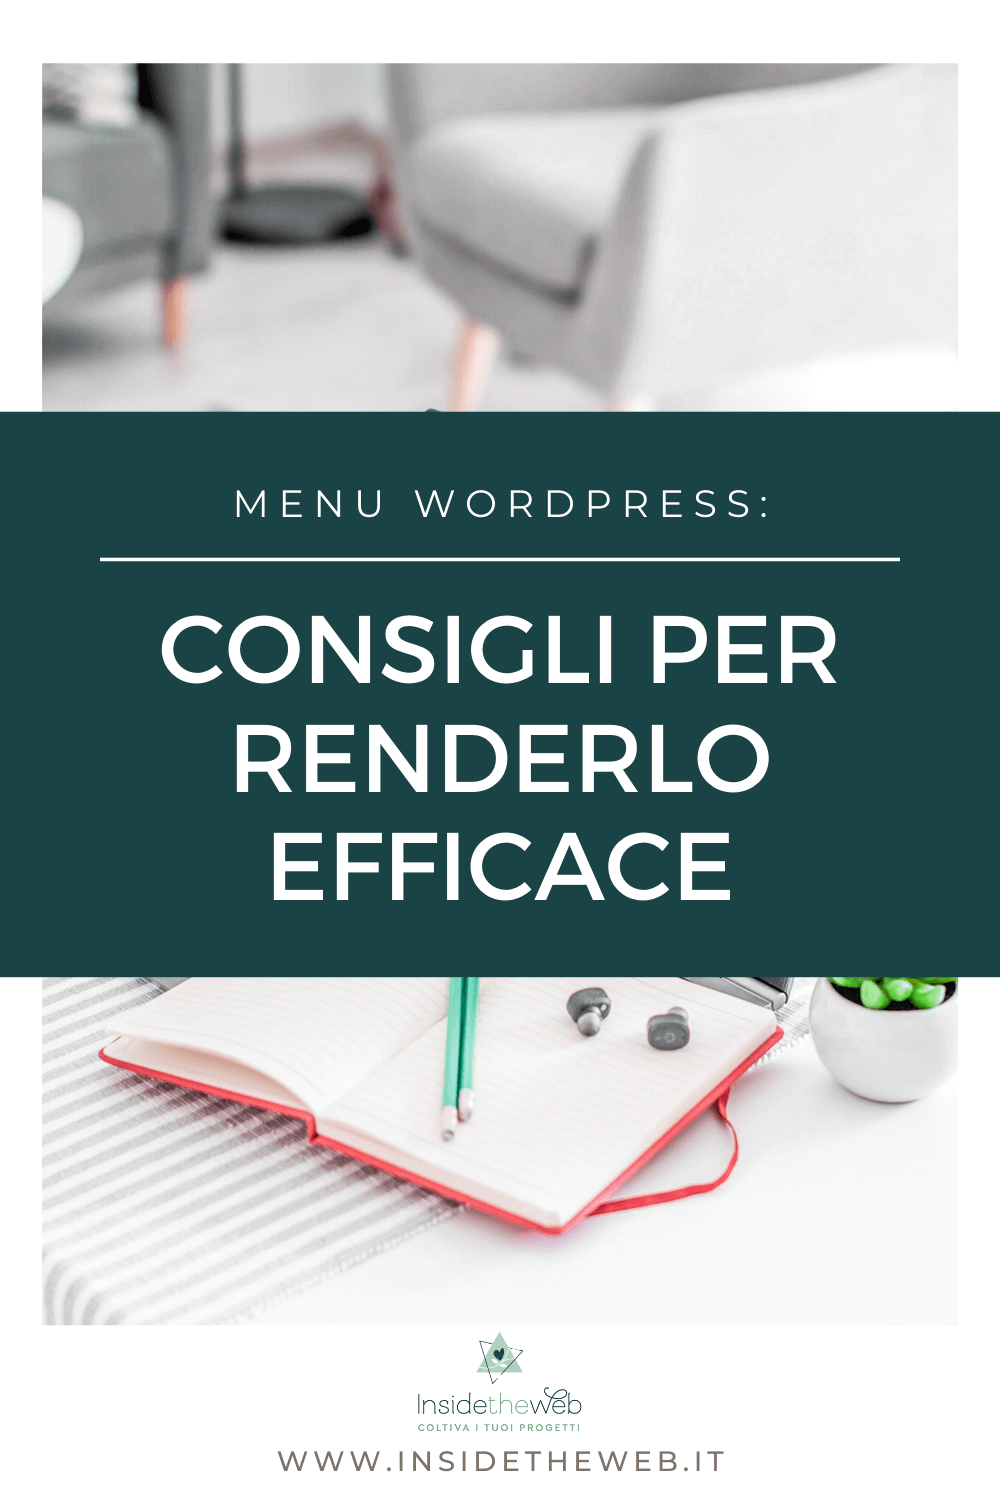 menu wordpress efficace pinterest insidetheweb (1)